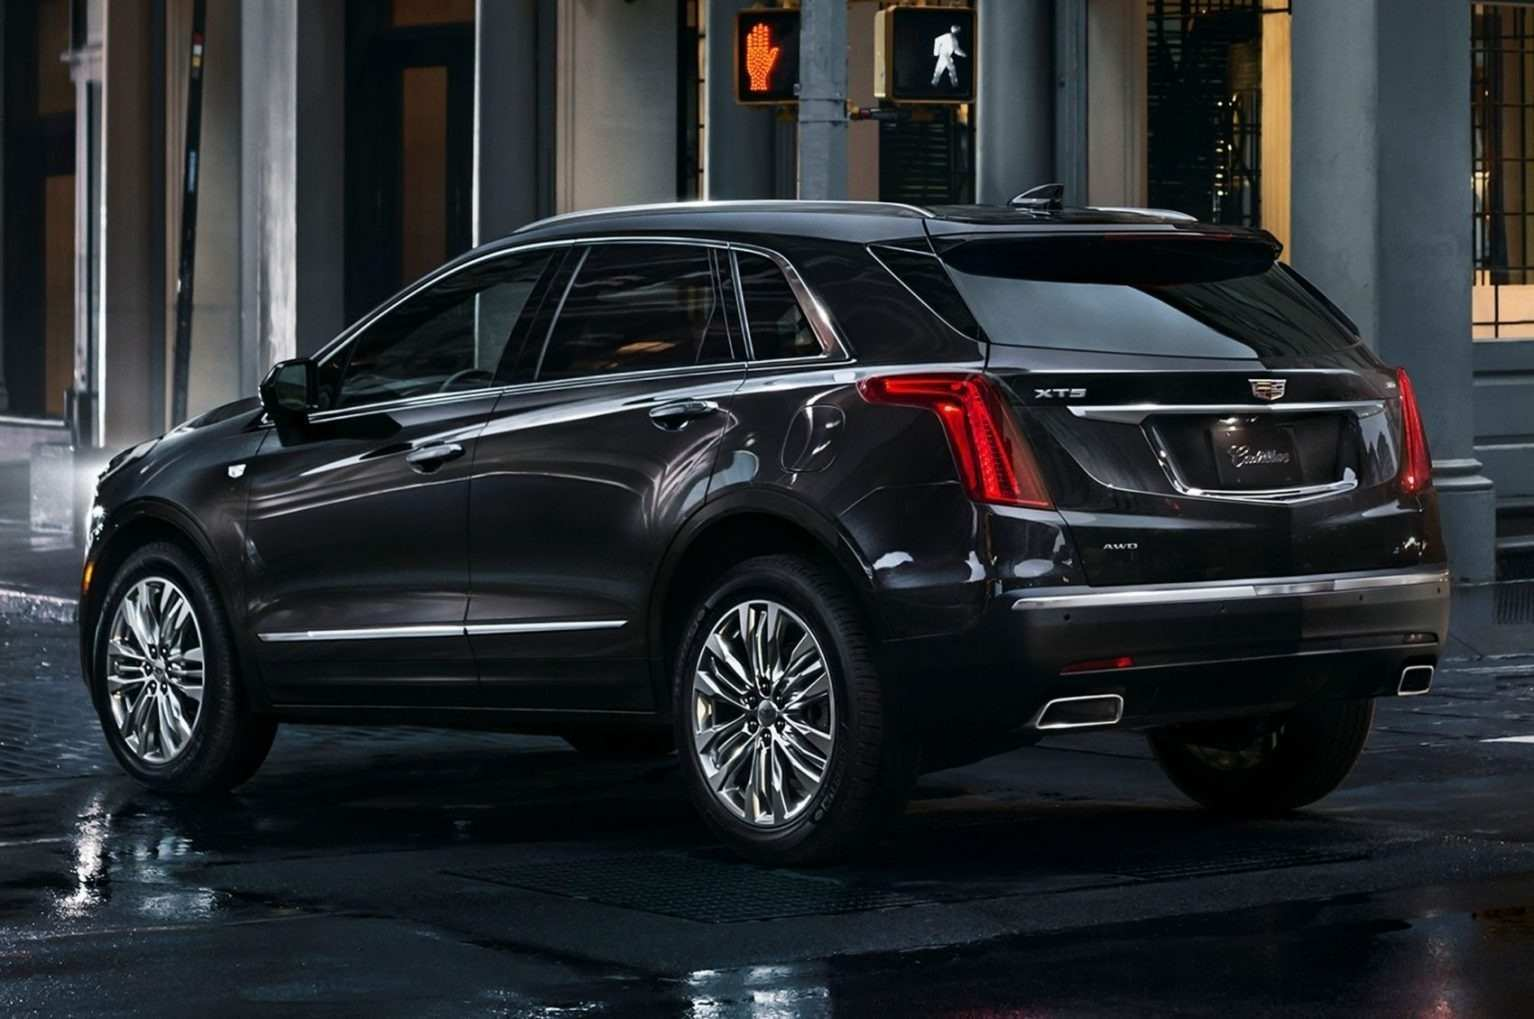 40 Great The Cadillac 2019 Srx Review And Release Date Style for The Cadillac 2019 Srx Review And Release Date